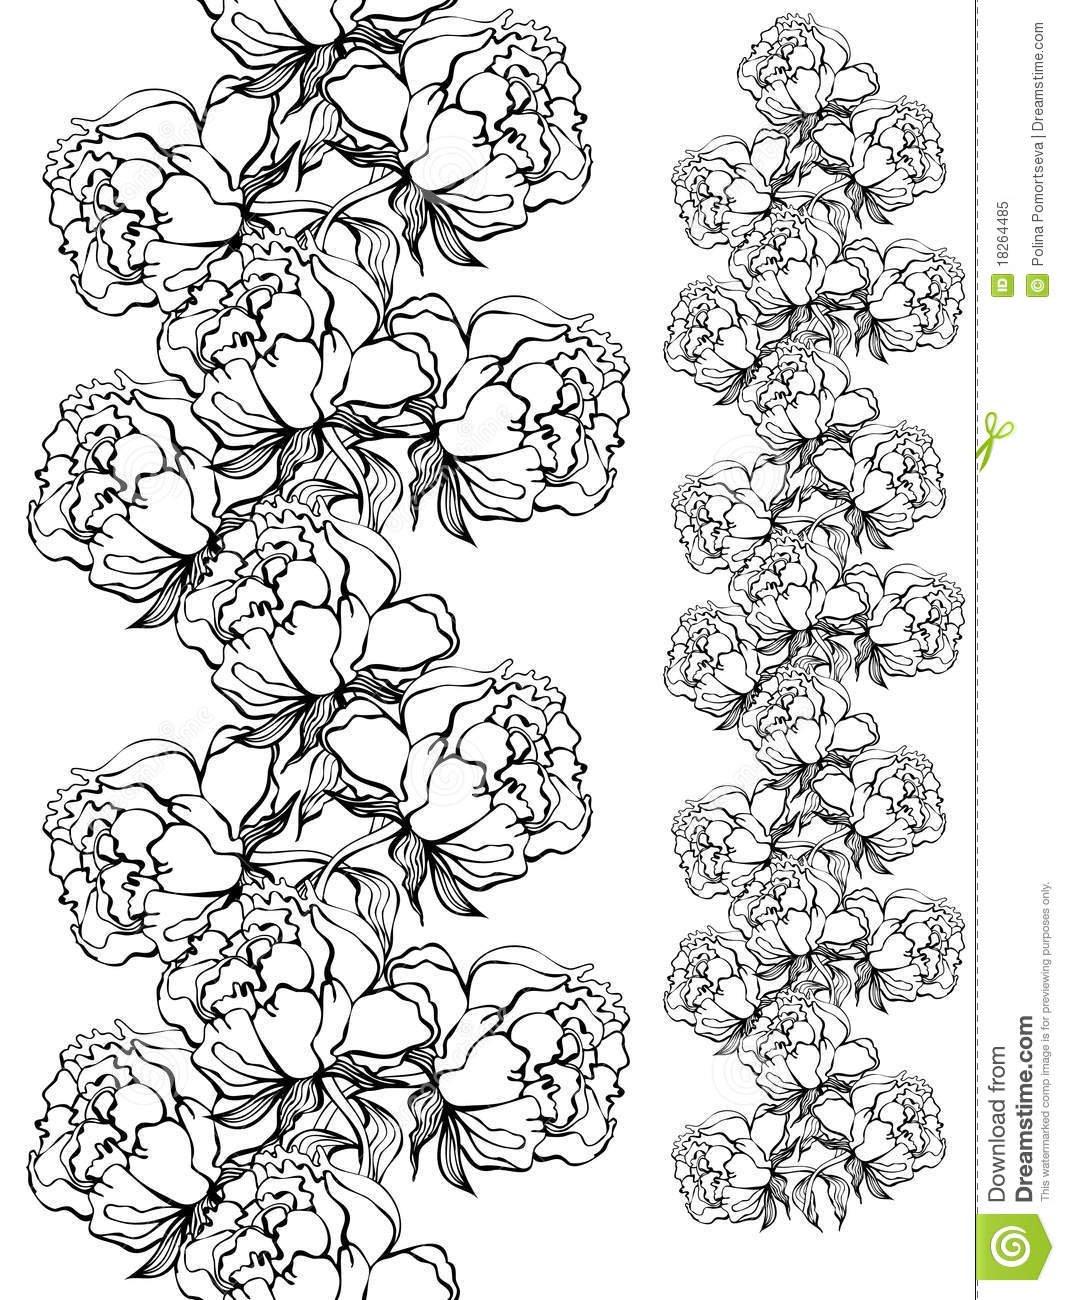 how to draw a simple rose bush